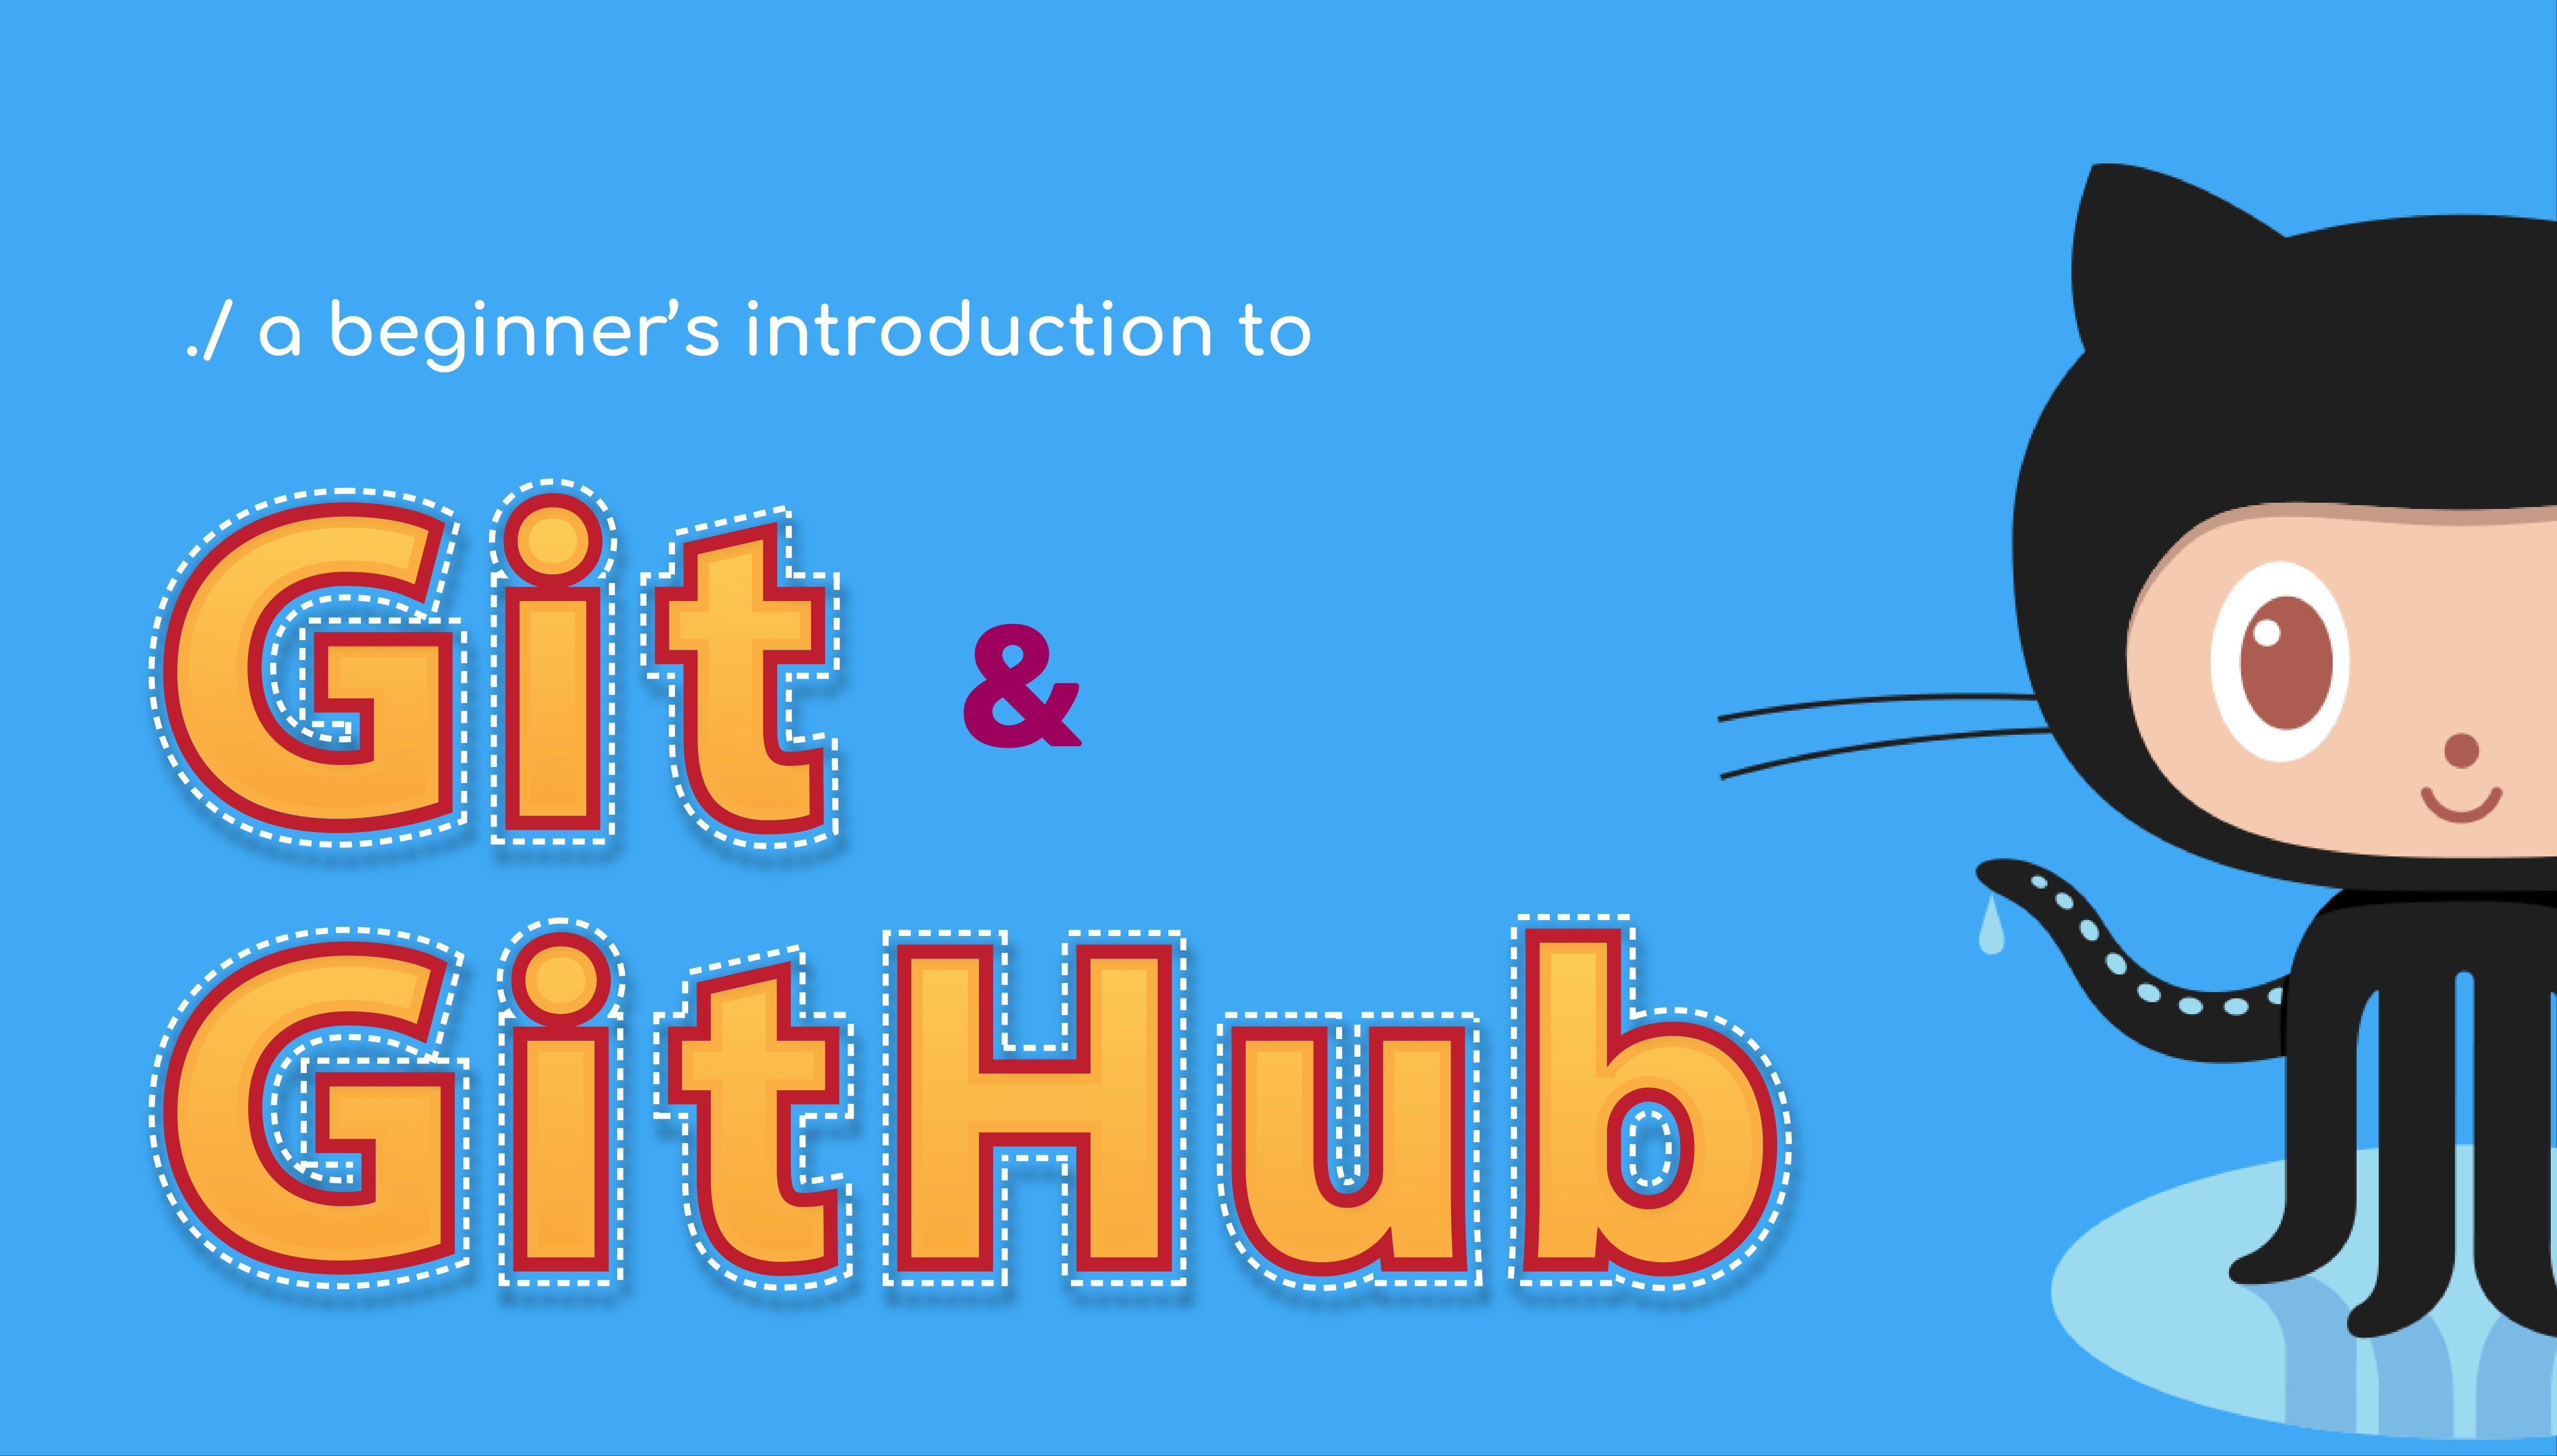 A beginner's introduction to Git and GitHub